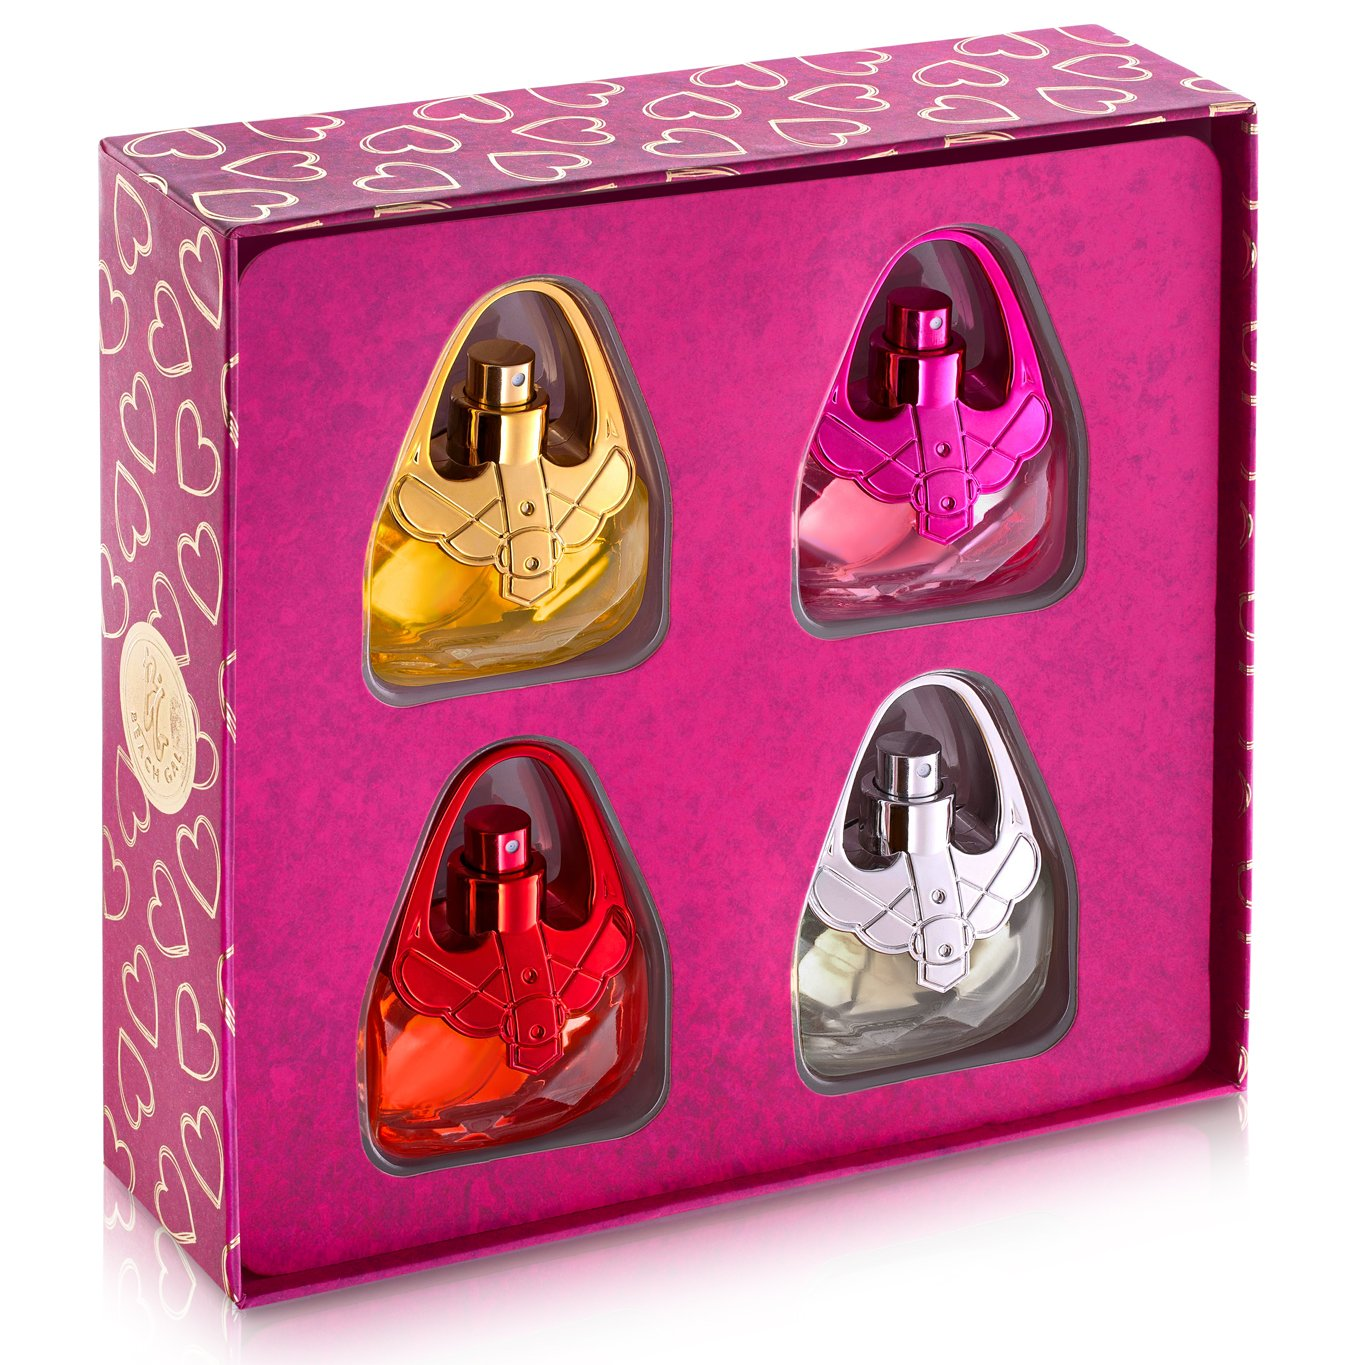 Eau De Fragrance Perfume Sets for Girls- Perfect Body Mist Gift Set for Teens and Kids - Purses - 4 Pack by Scented Things (Image #2)